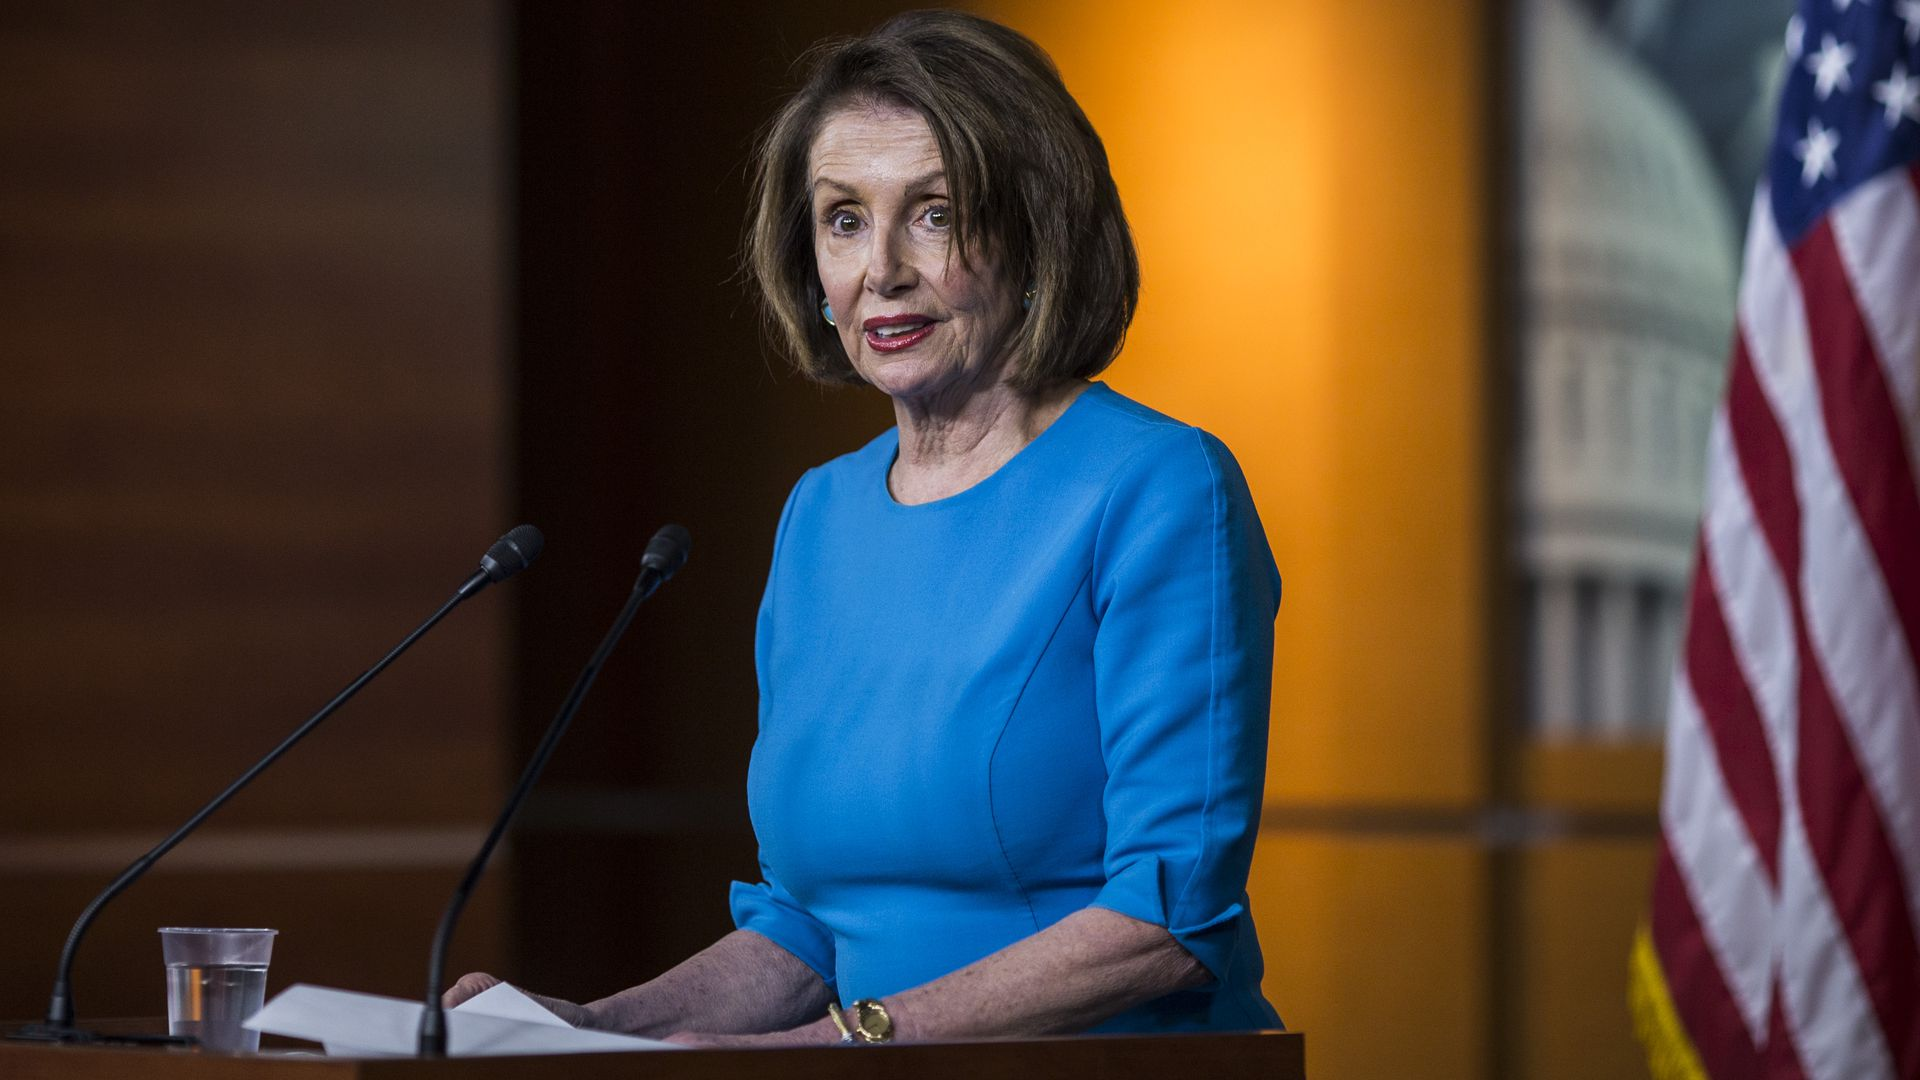 Trump impeachment: Top Democrats press Pelosi to launch inquiry — reports